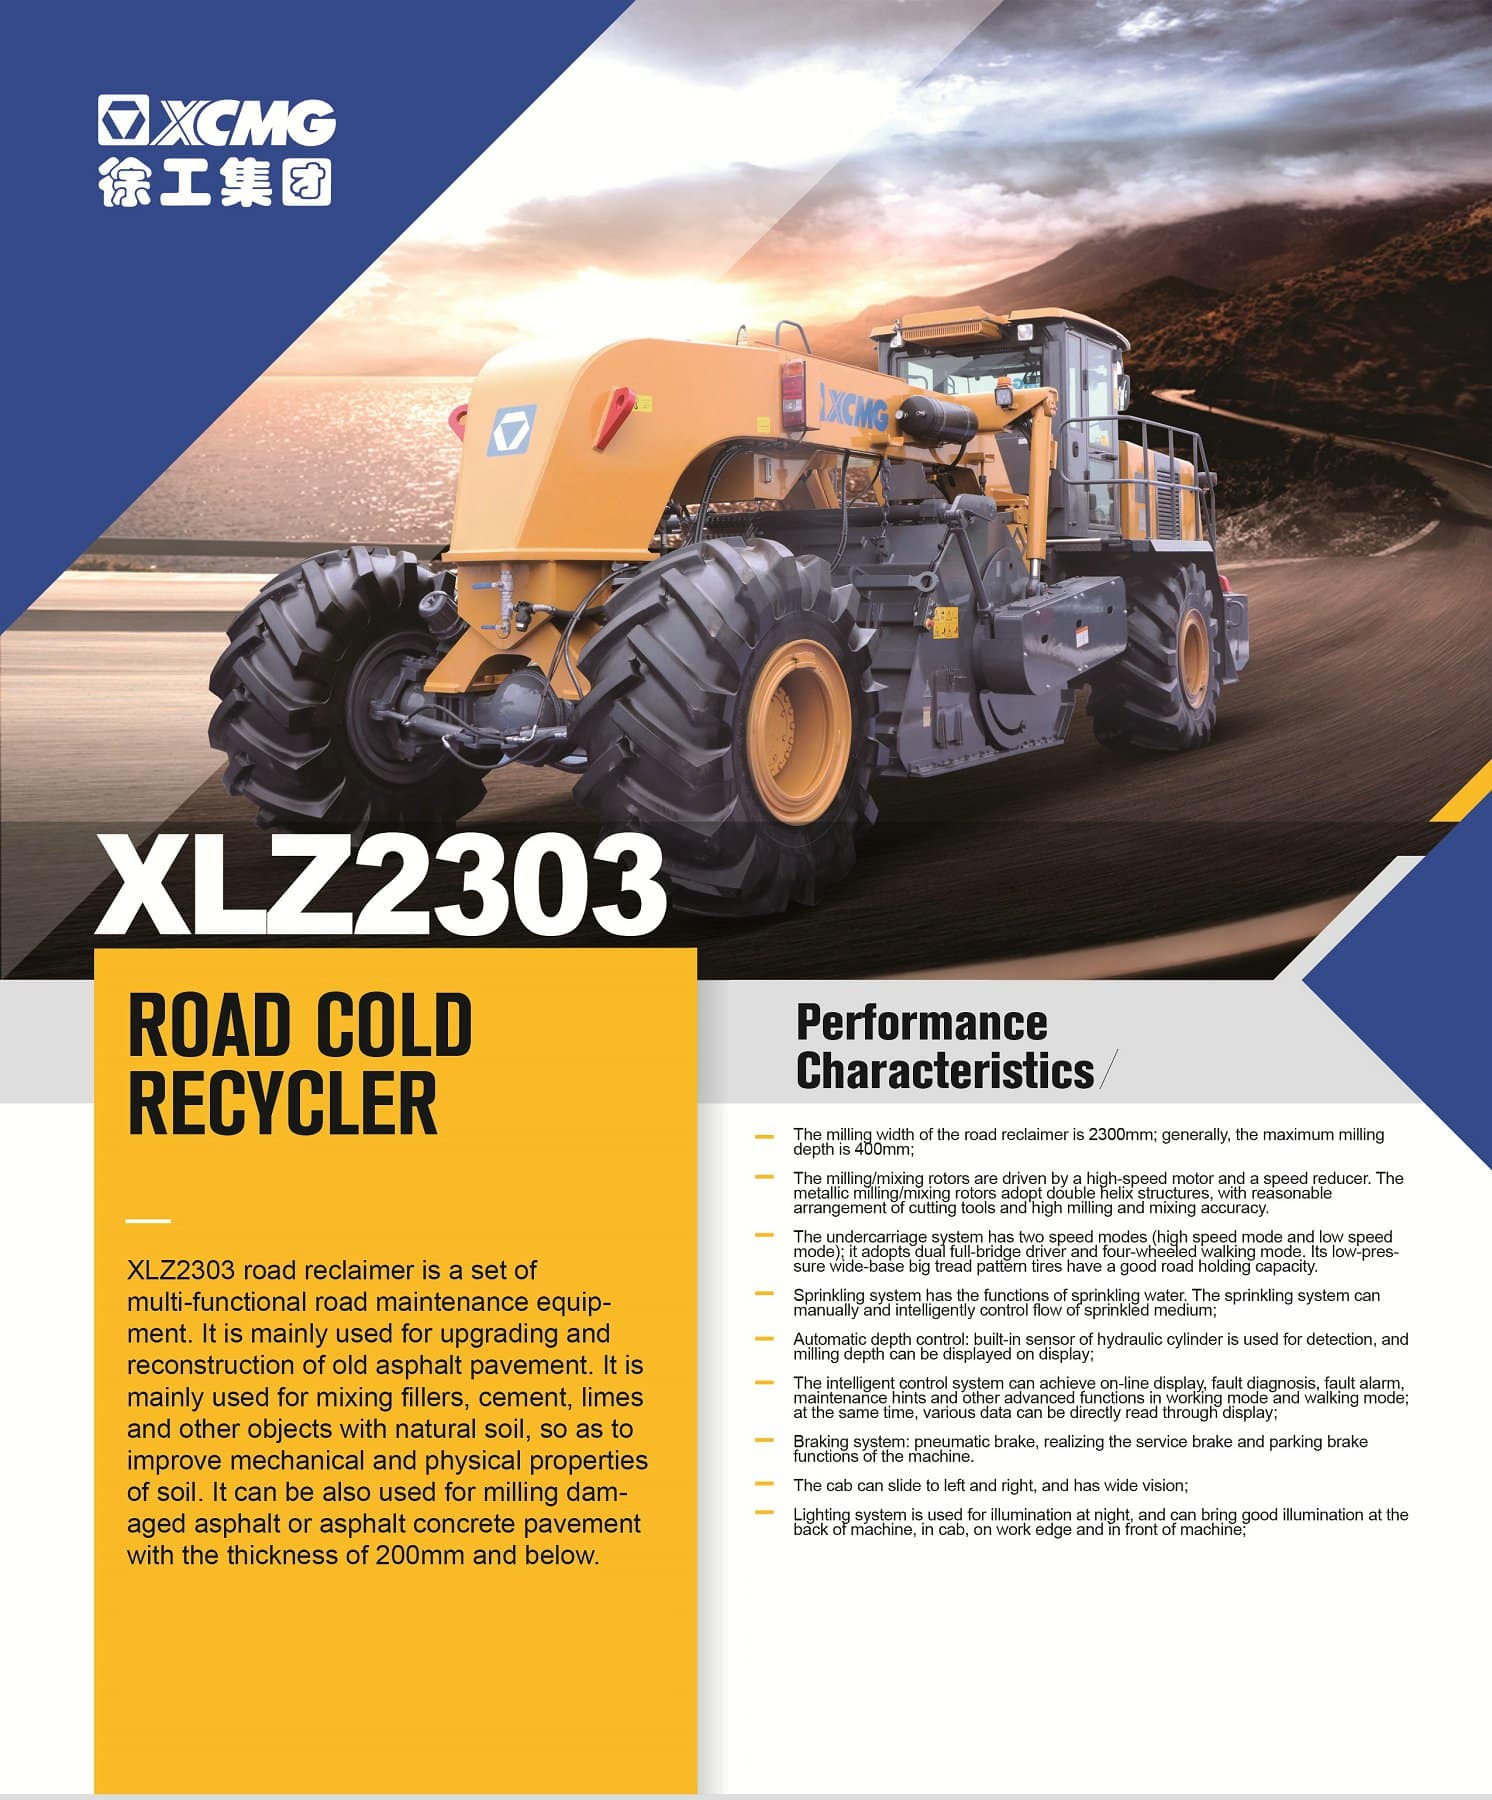 XCMG Official Road Cold Recycler XLZ2303 For Sale